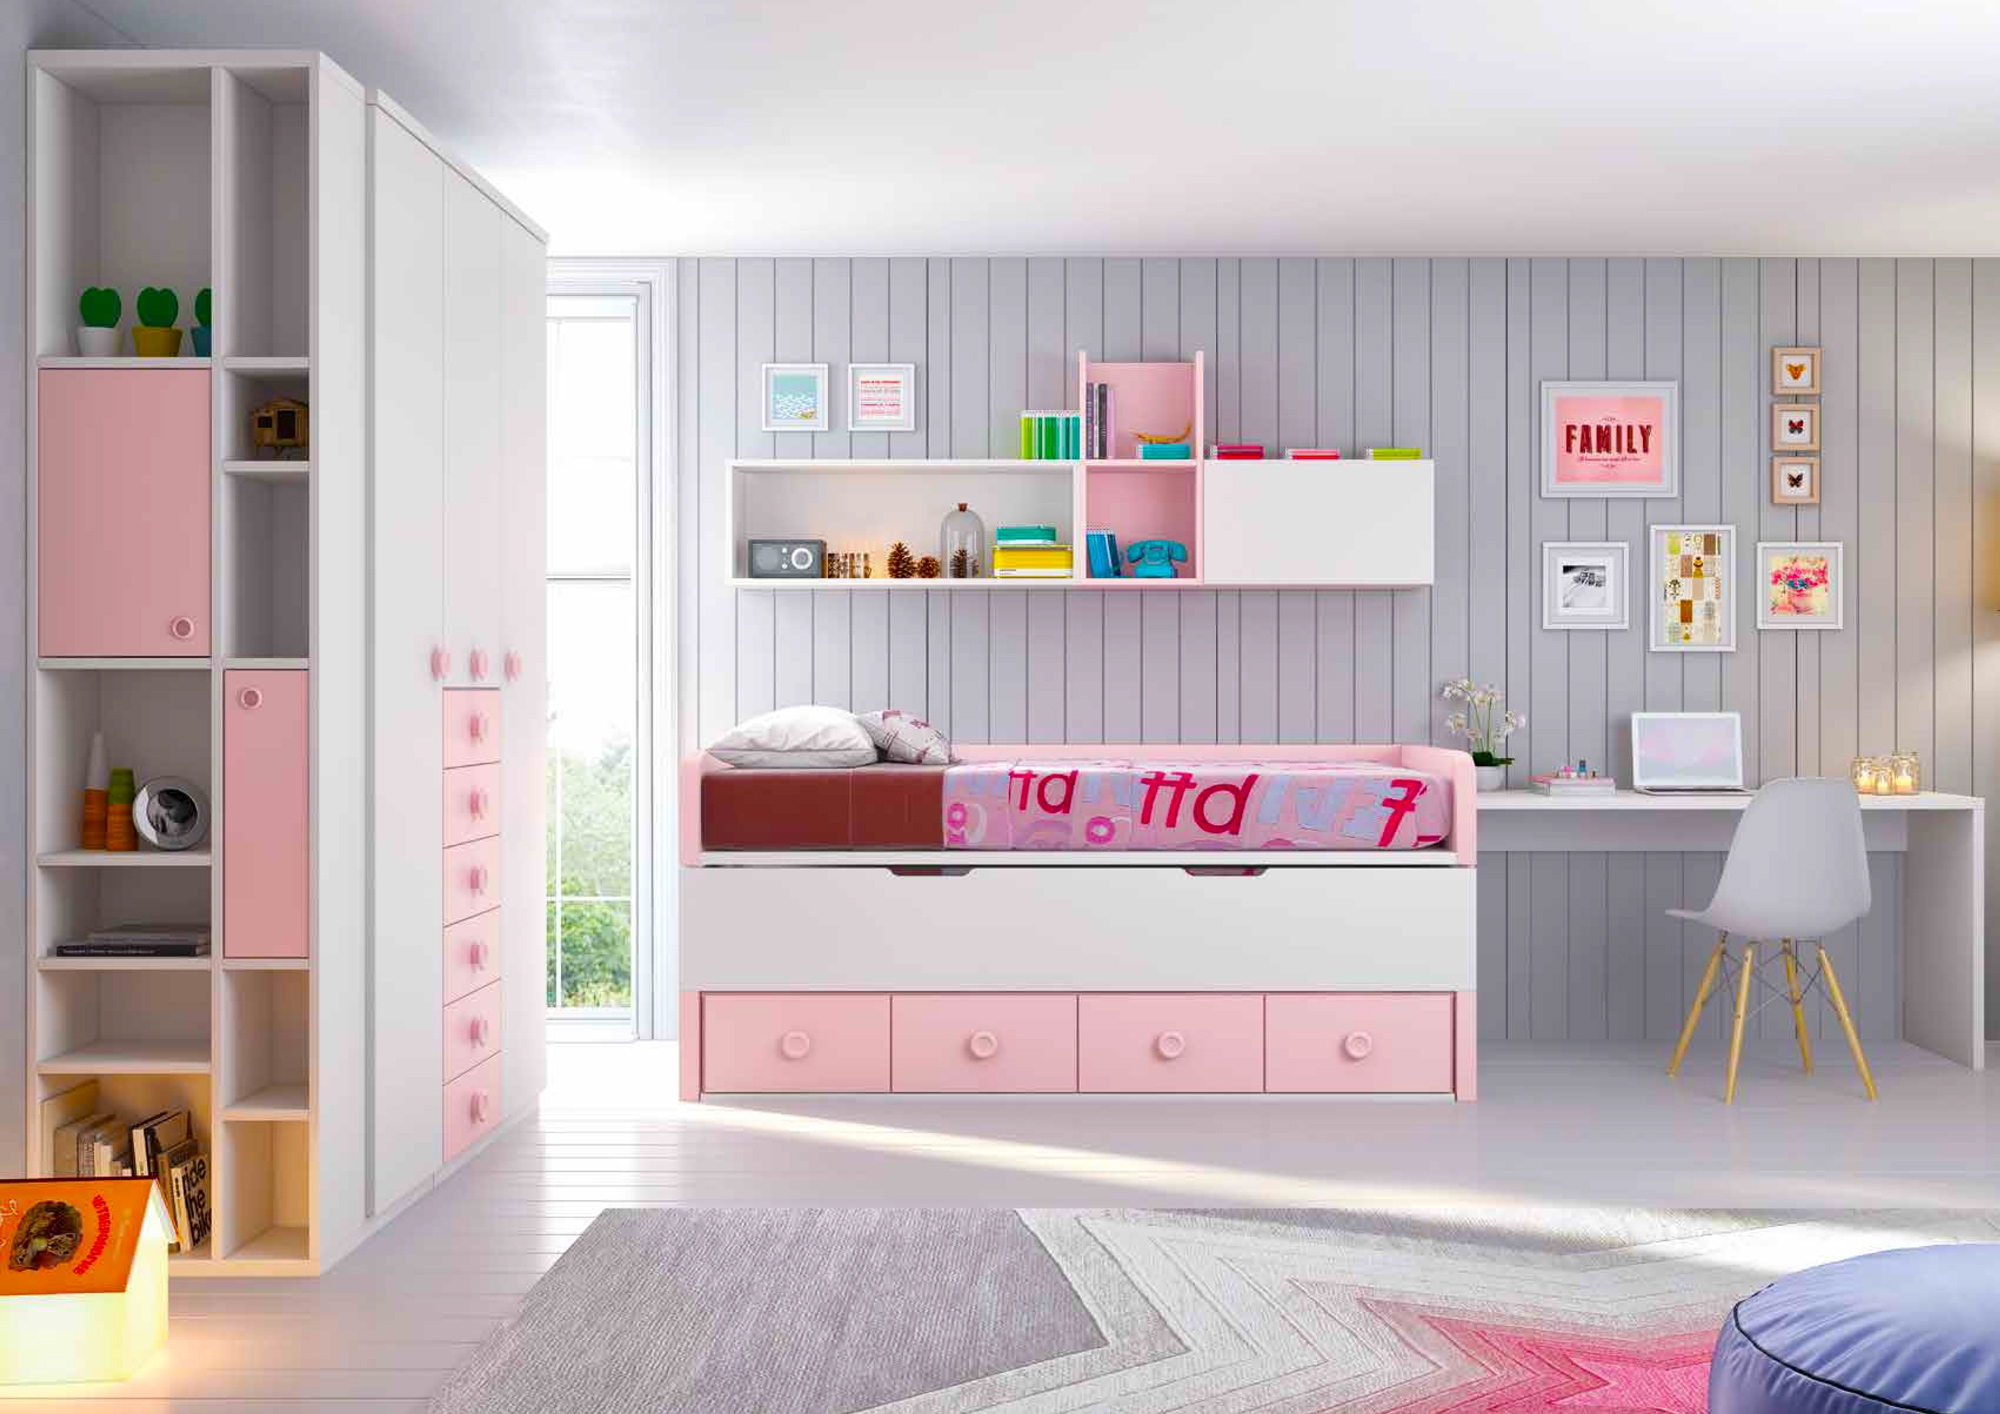 Chambre fille rose compl te personnaliser girly for Muebles para dormitorios juveniles modernos